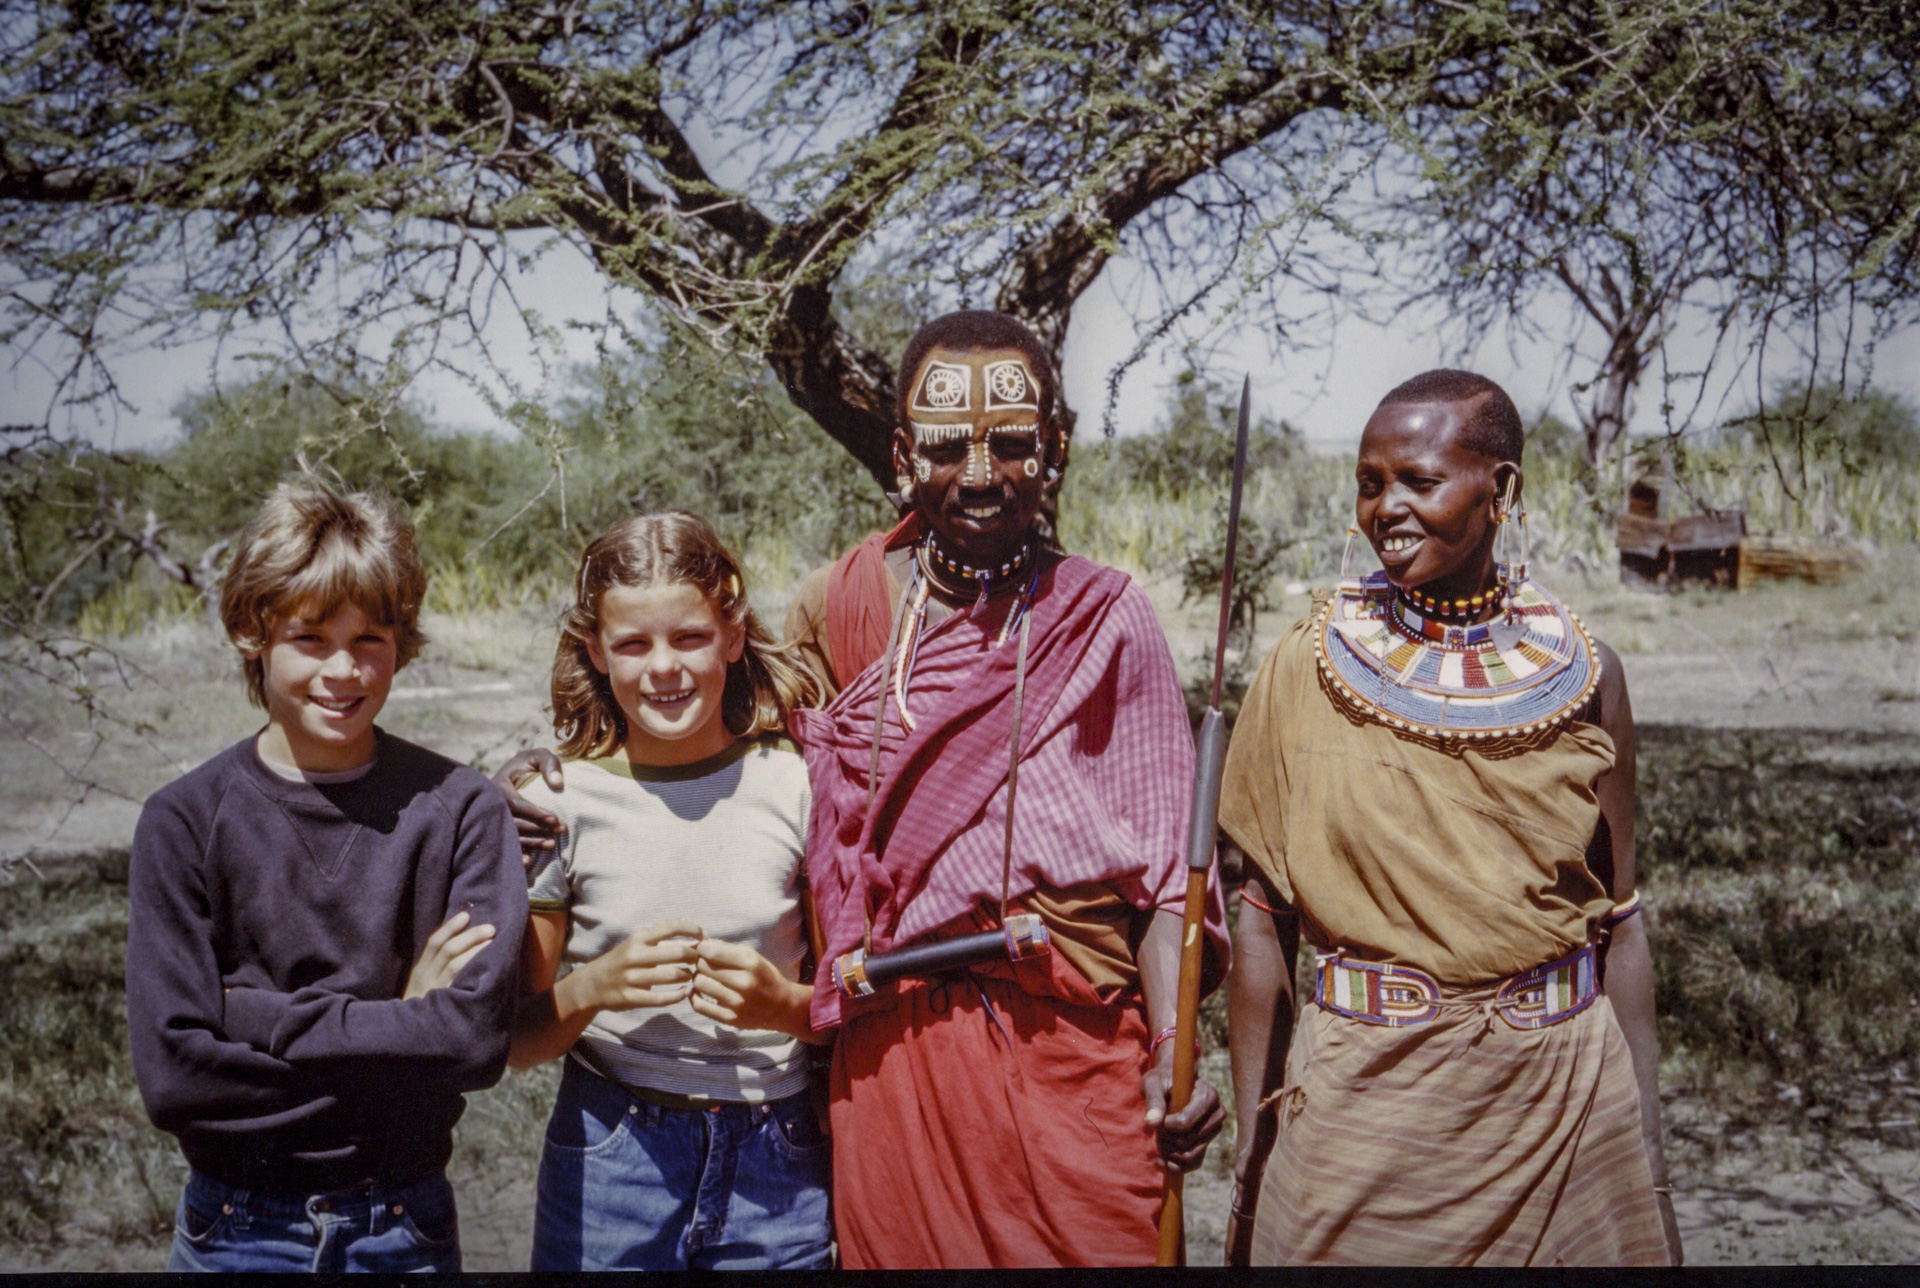 Jane Arthur with the Masai in the 1980s